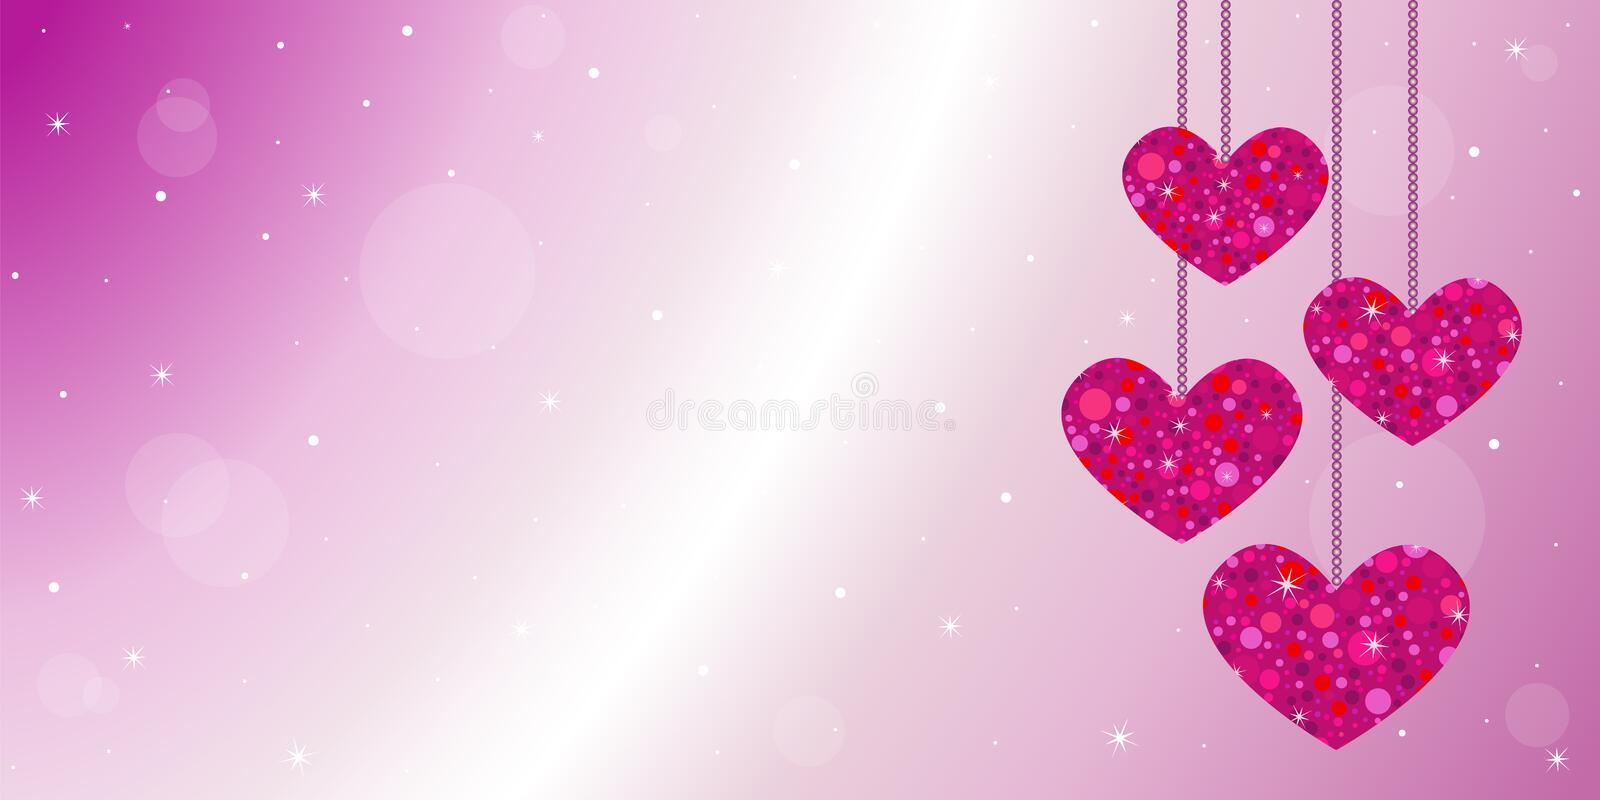 Happy Valentine's day card background with hanging red glitter hearts stock illustration